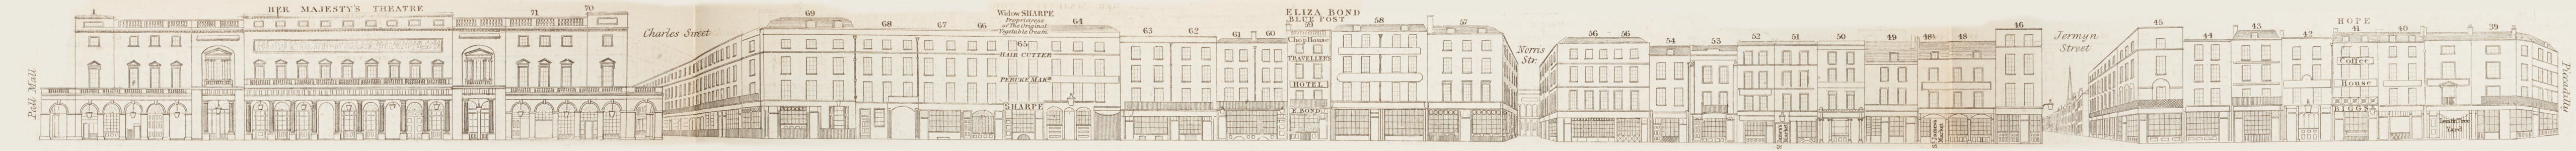 map - Tallis's London street views : No. 22. Haymarket (west)